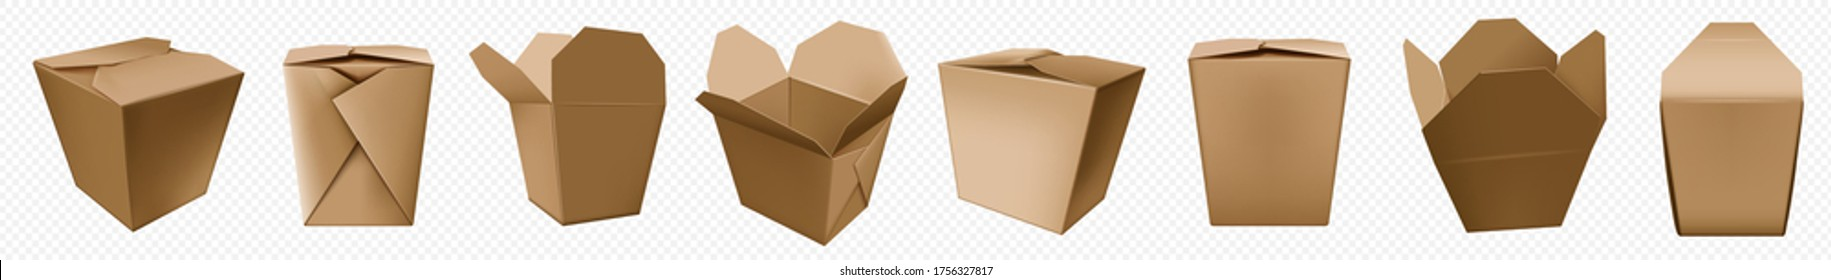 Take away food box. Chinese noodle container of craft paper. Brown cardboard bag template for asian food. Takeout fastfood pack mockup.